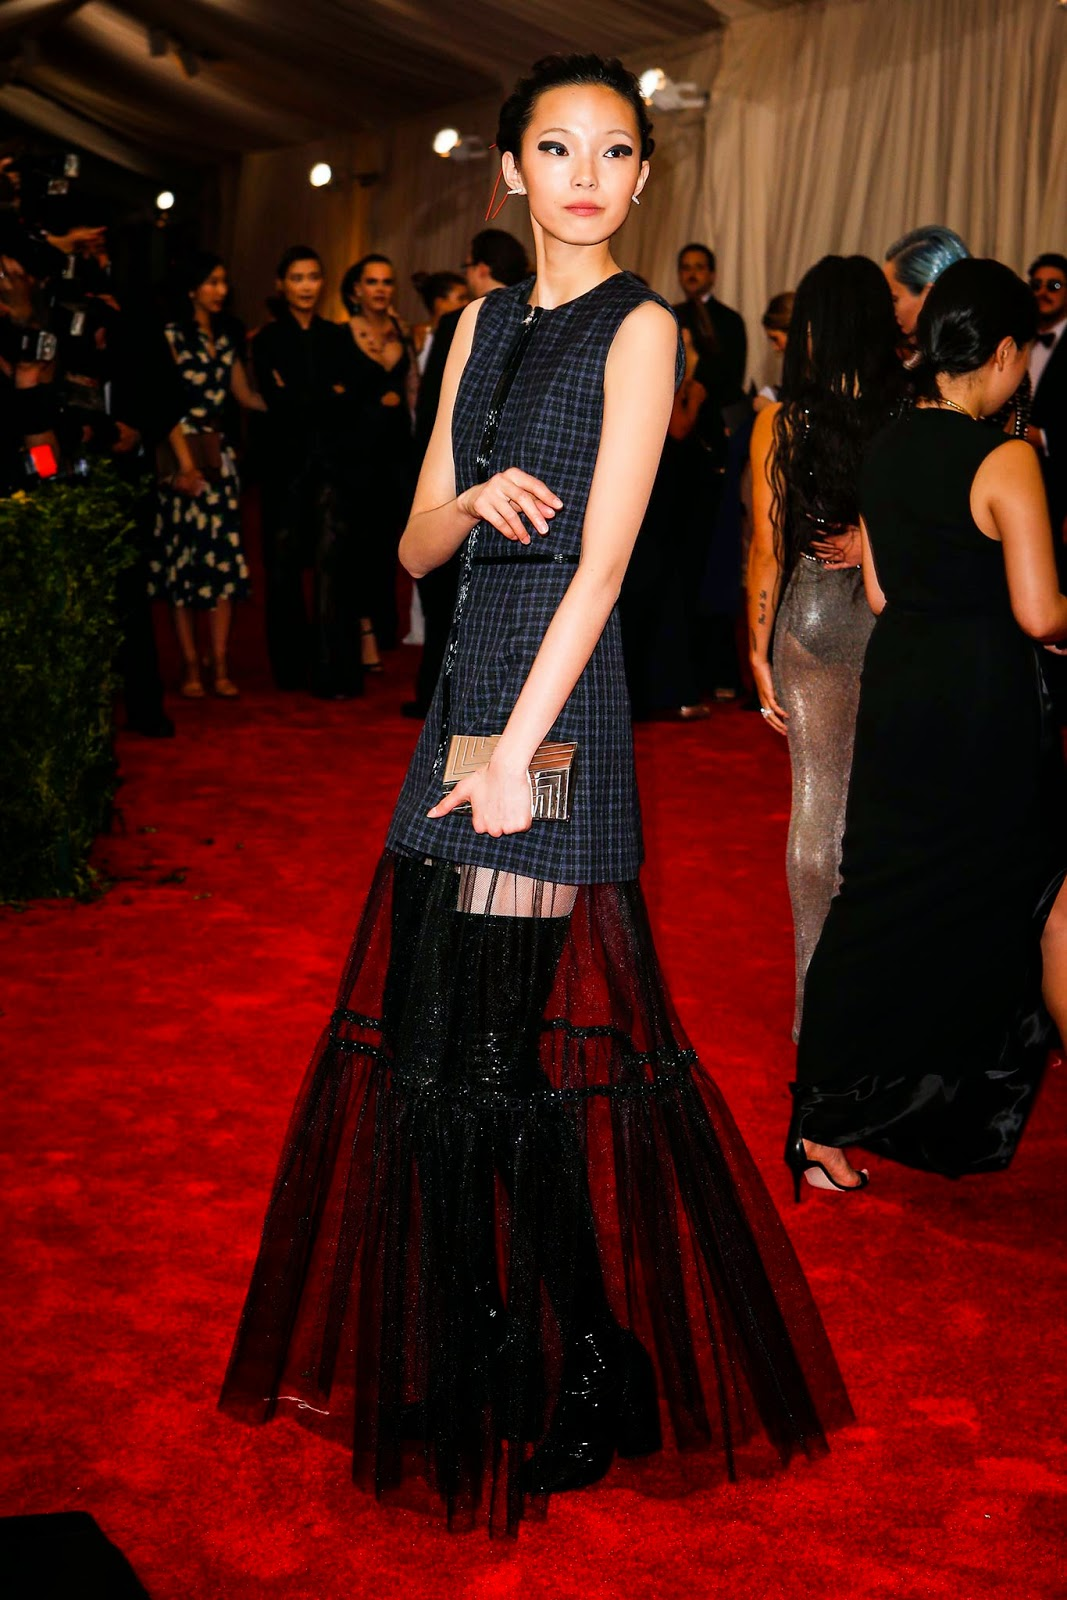 Met Ball 2015, Marc Jacobs